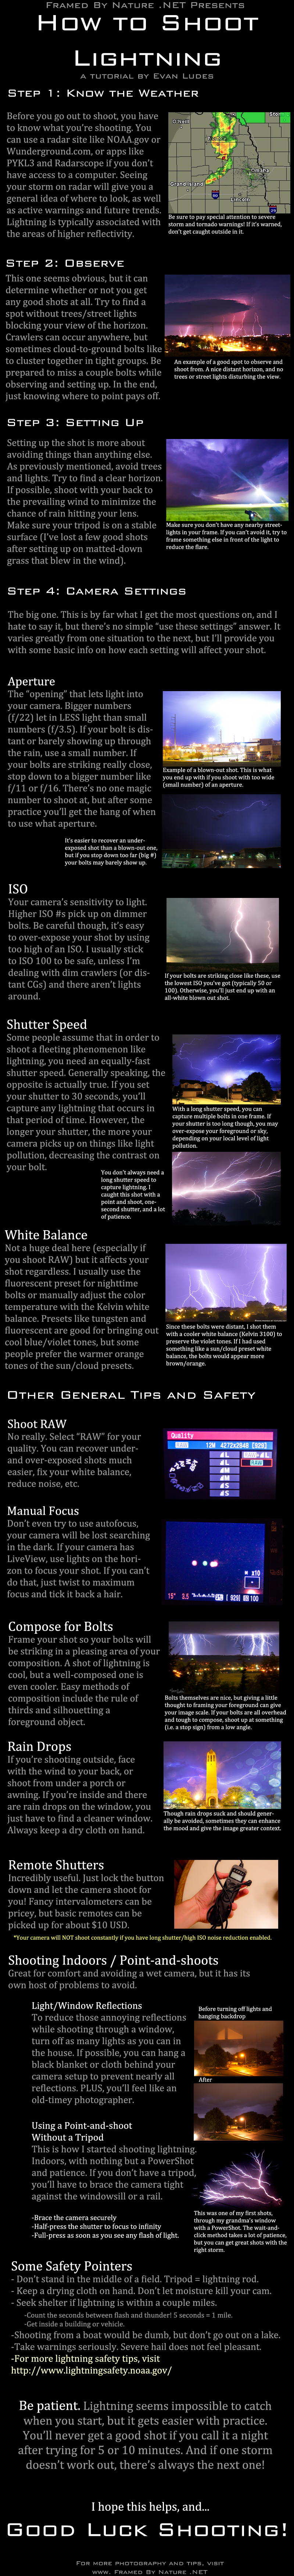 Lightning Photography Tutorial by FramedByNature